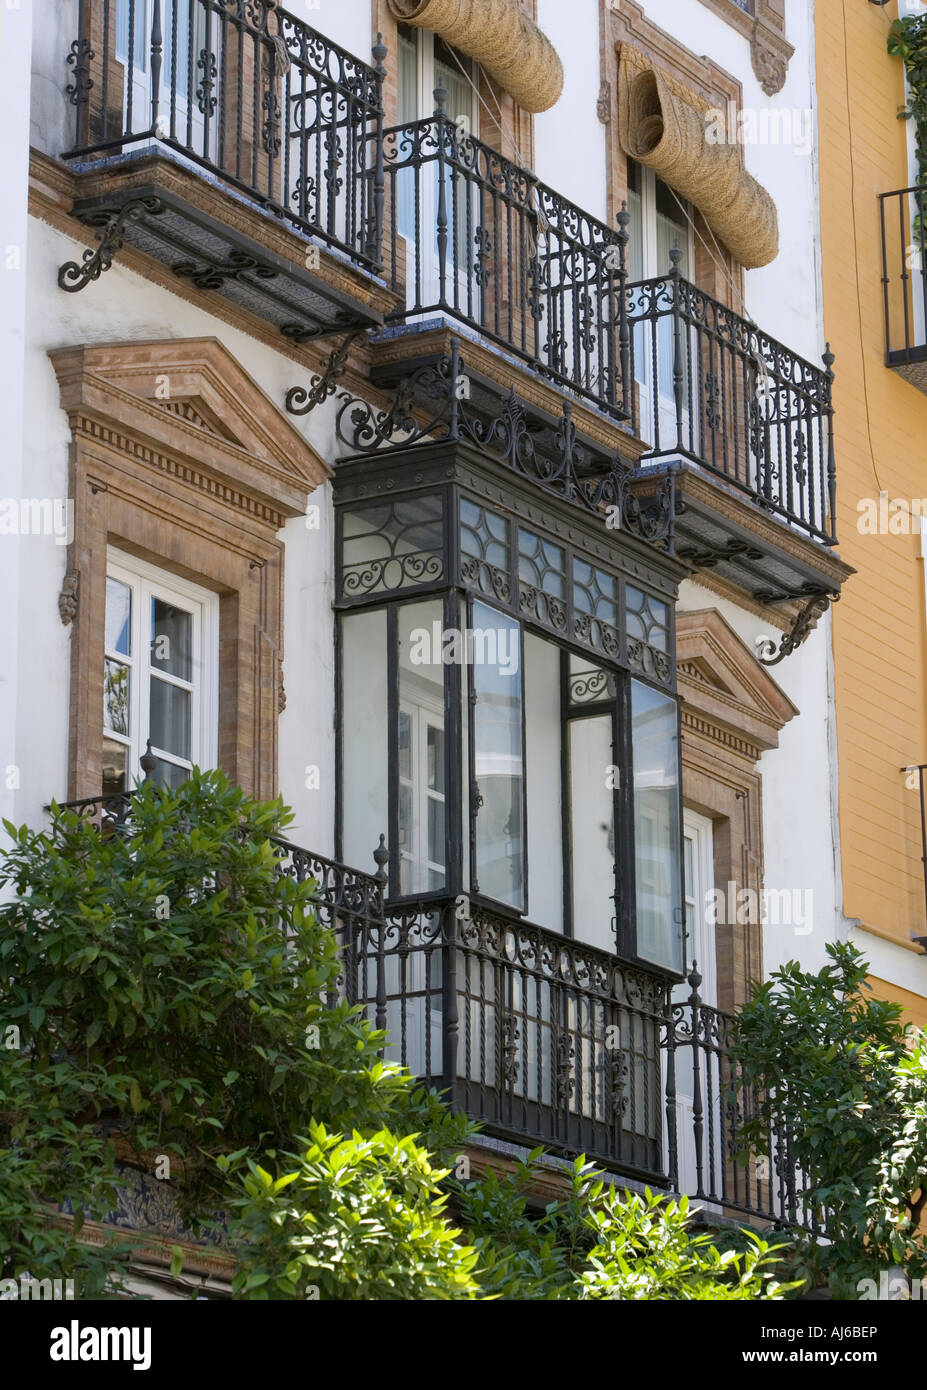 Open and enclosed balconies on a residential street in Seville Spain - Stock Image